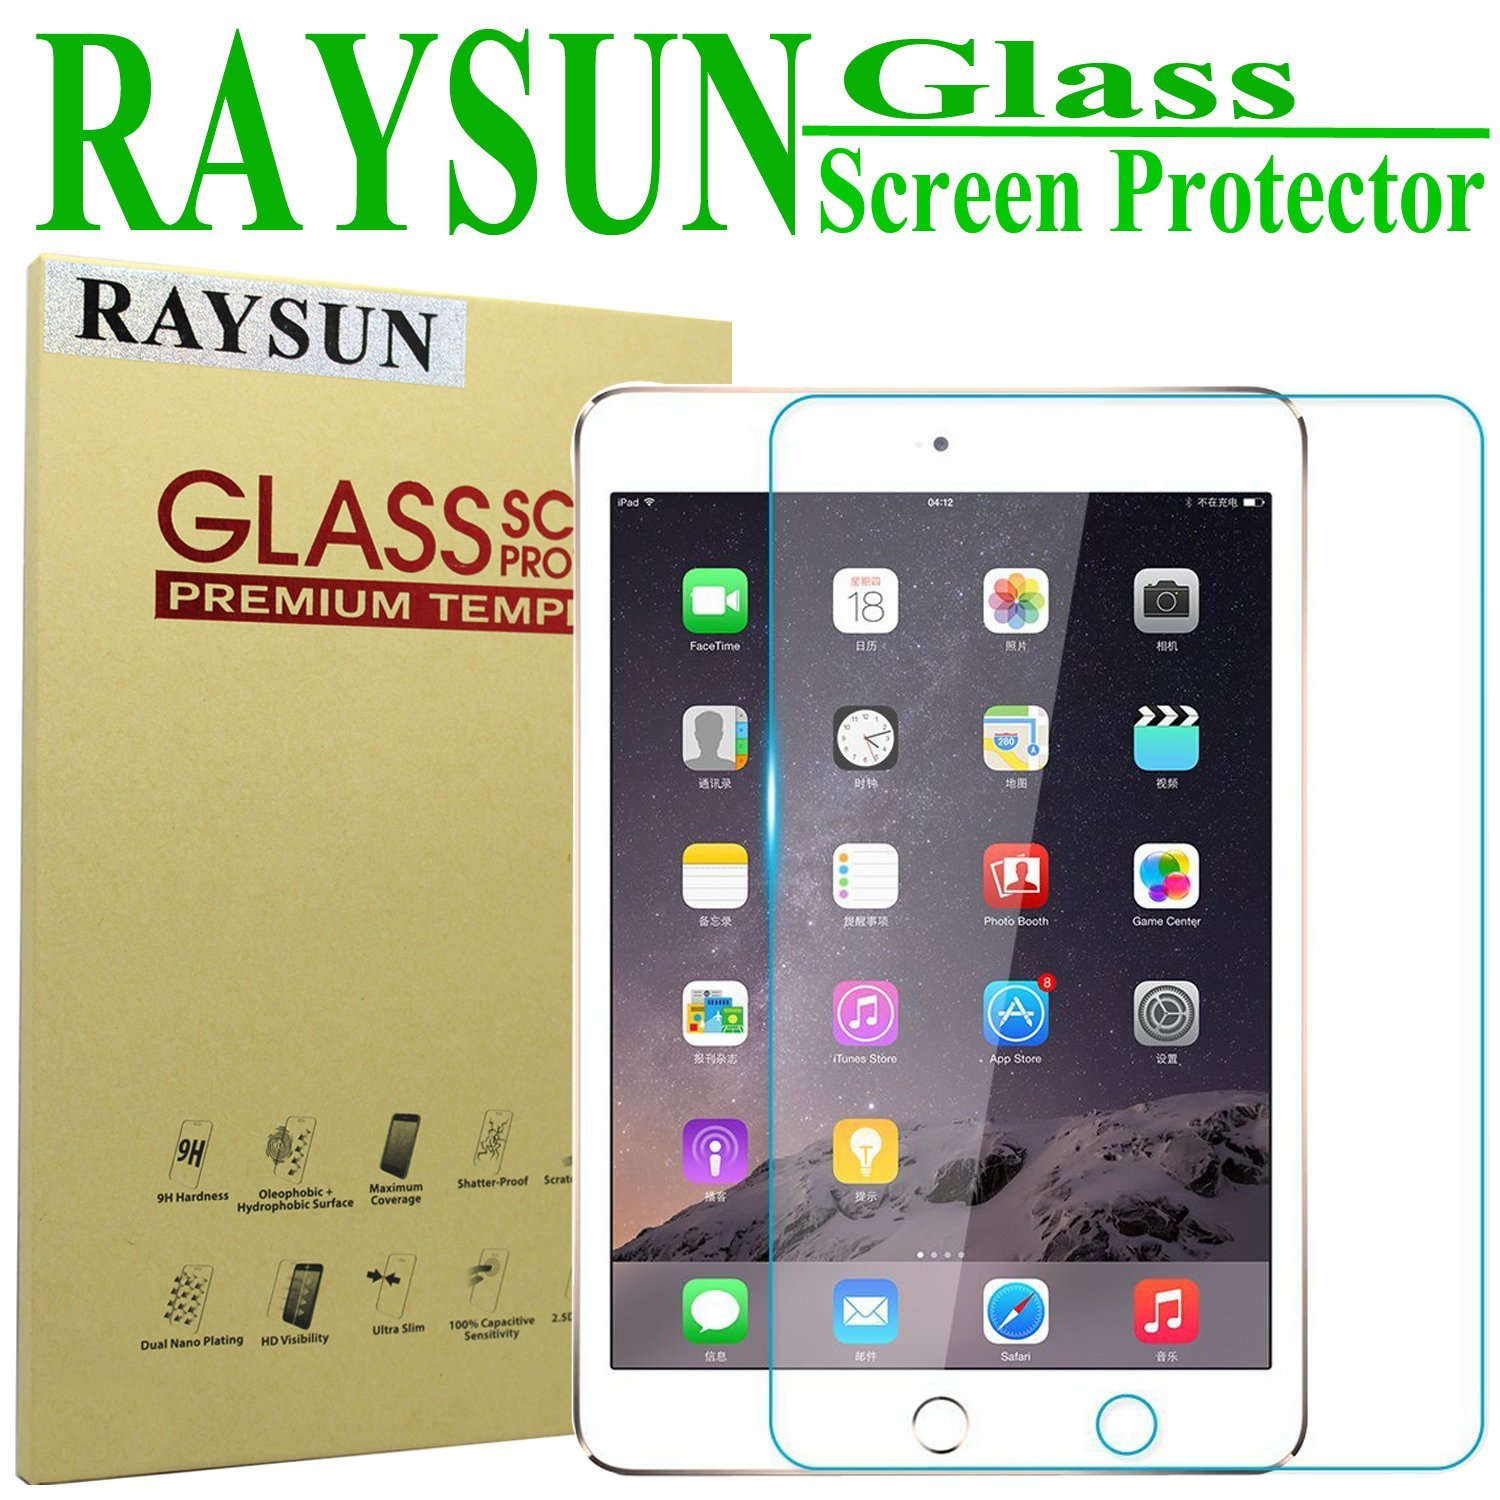 RAYSUN iPad Air 2 iPad Air Glass Screen Protector Premium Ballistic Tempered Glass Screen Protector for iPad Air - 0.33mm Made of Real Glass 9H Hardness Shatterproof High Definition (Fulfilled by Amazon)